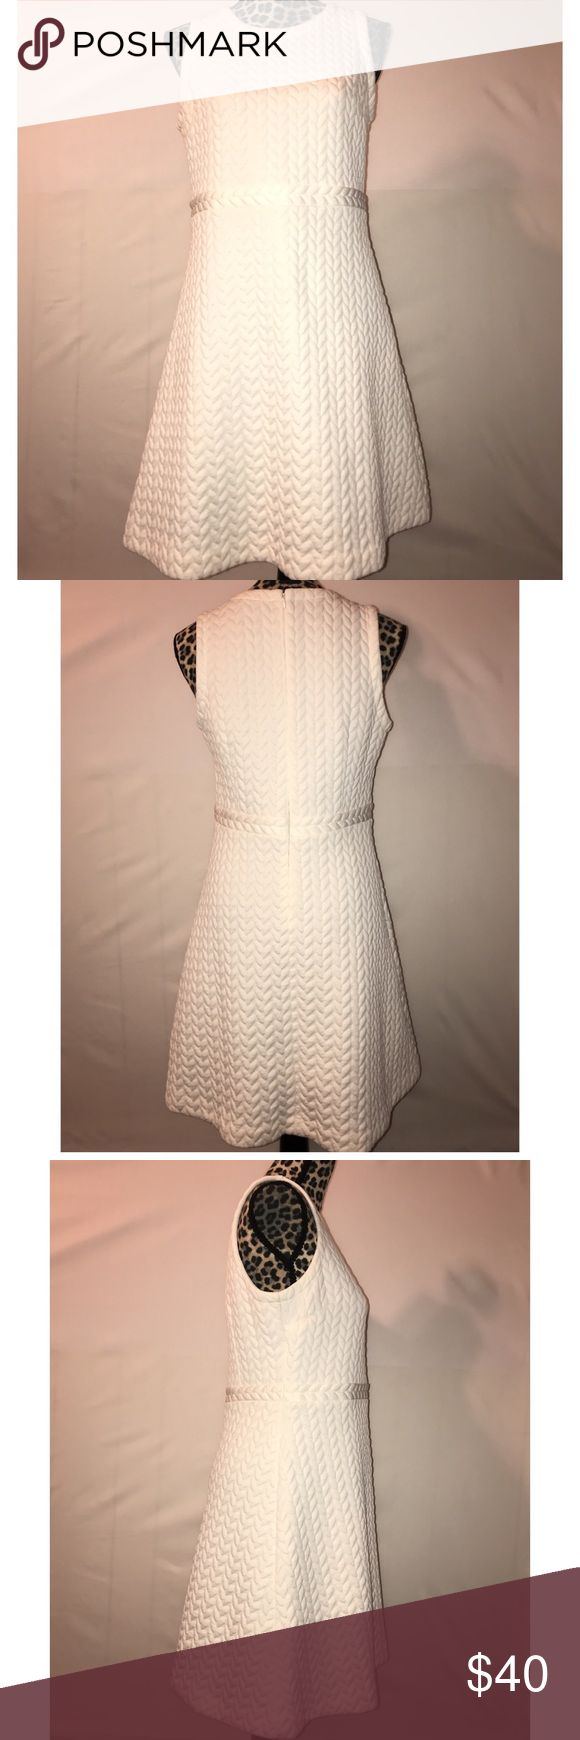 """Womens Ann Taylor LOFT off white dress 8 petite Beautiful Ann Taylor Loft sleeveless dress, size 8 petite, off white color,  gently used no stains, holes, or pulls, zips up the back Armpit to armpit 36"""" waist 32"""" top to bottom 36"""" LOFT Dresses Midi"""